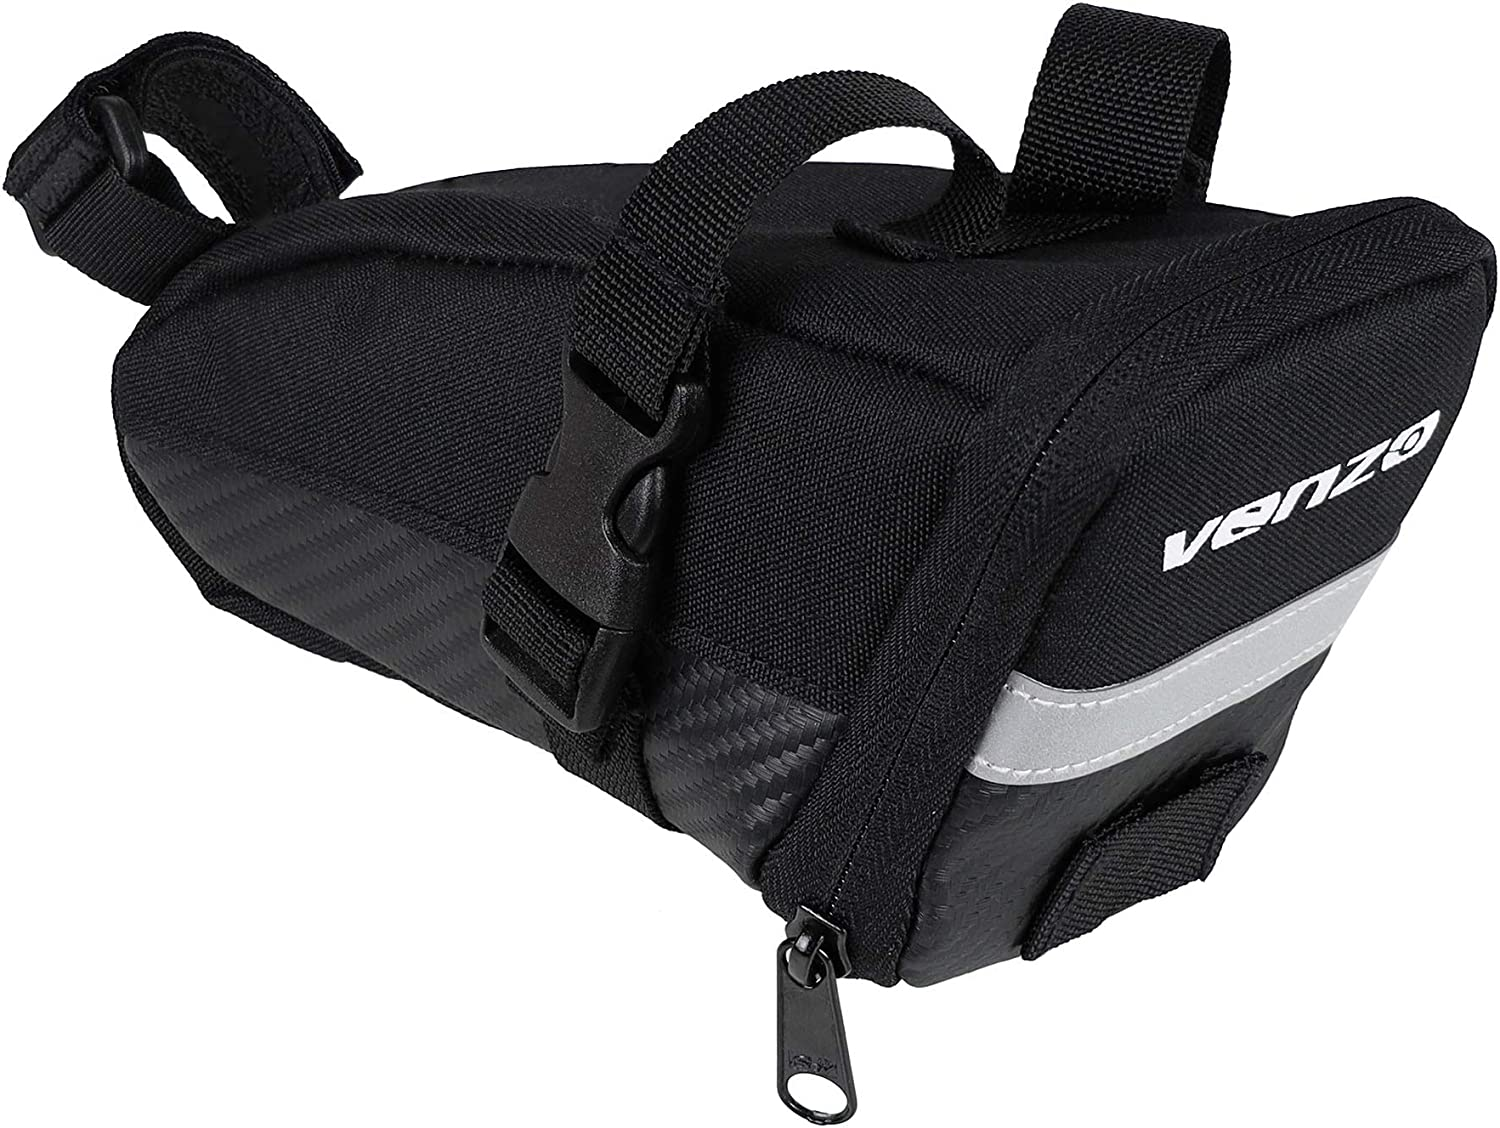 Venzo Road Mountain MTB Bike Bicycle Accessories Polyester Seat Saddle Bag